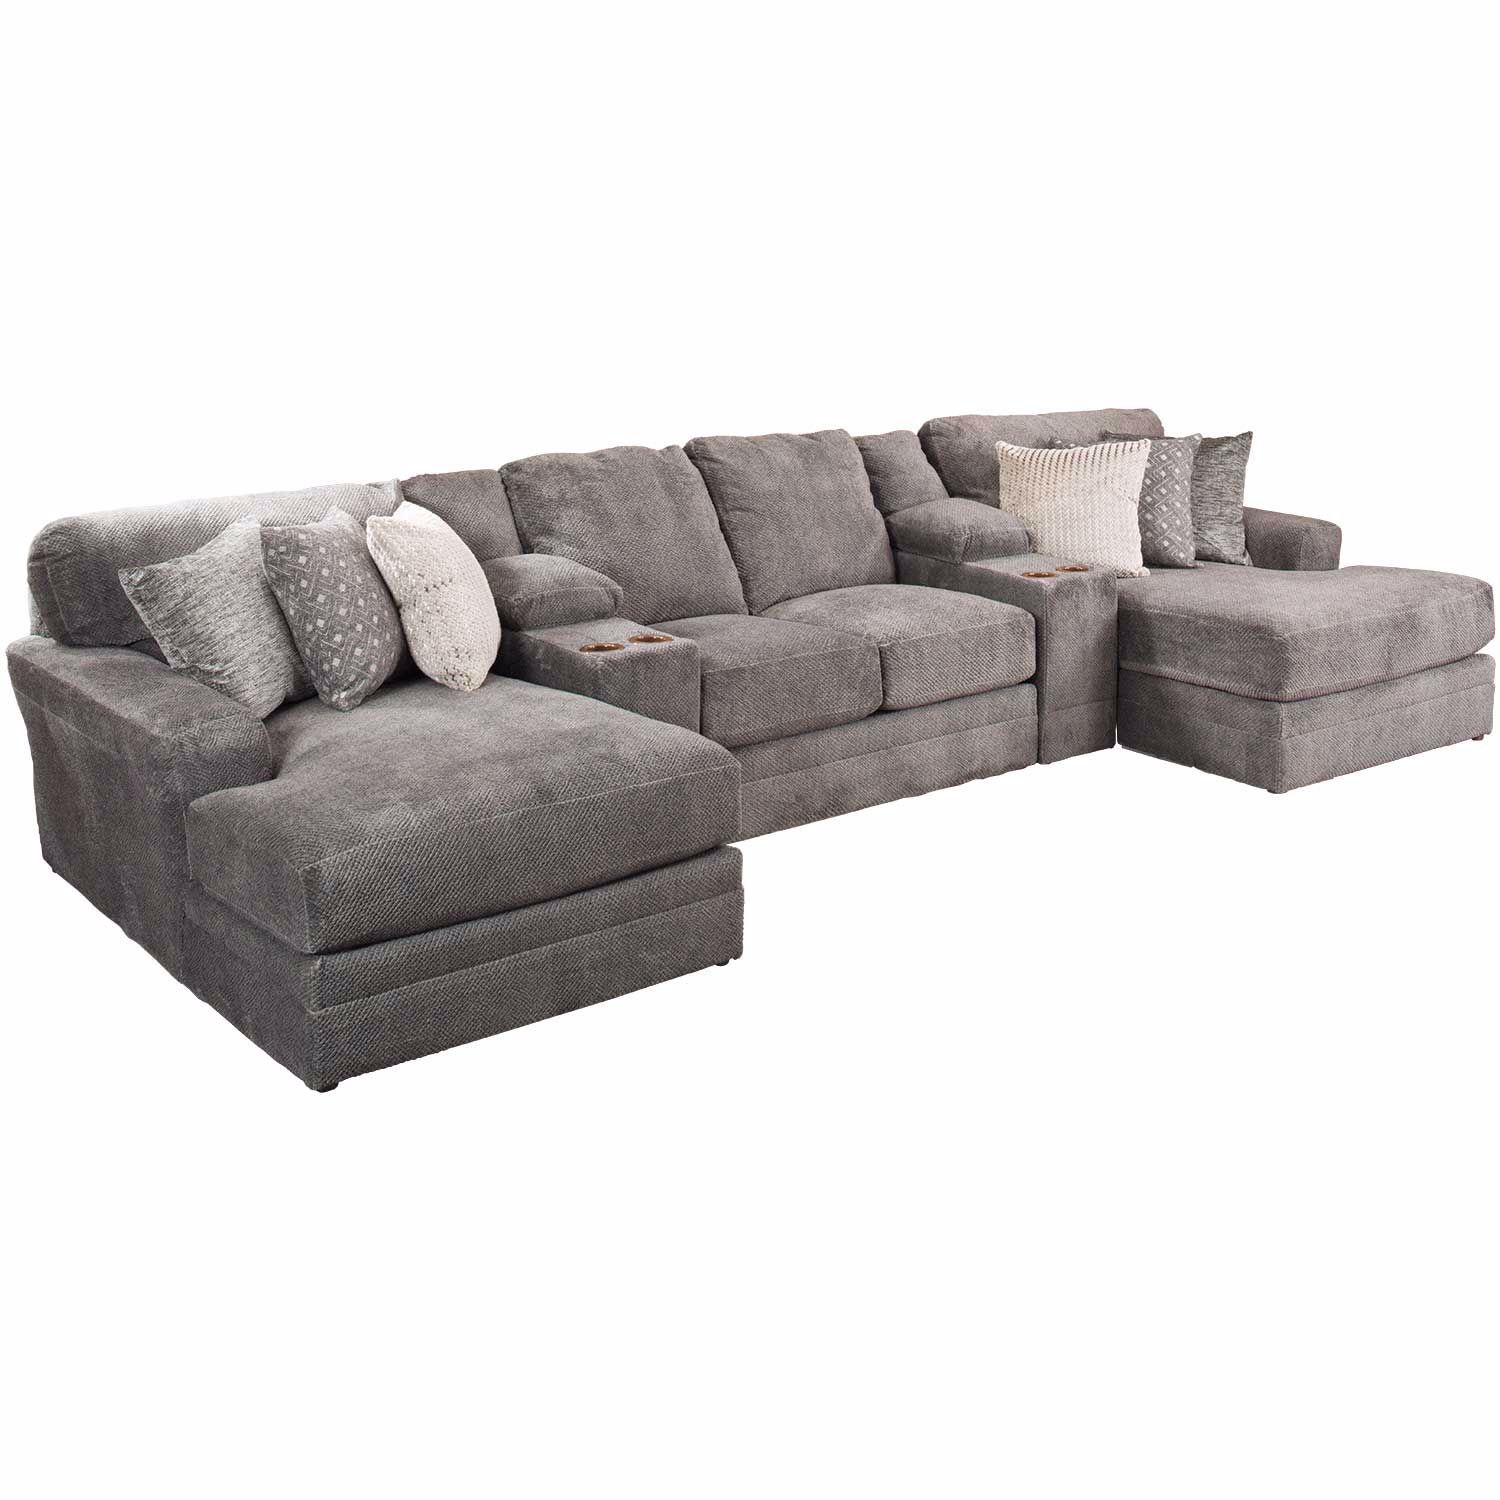 Picture of Mammoth 5 Piece Sectional with LAF and RAF Chaise